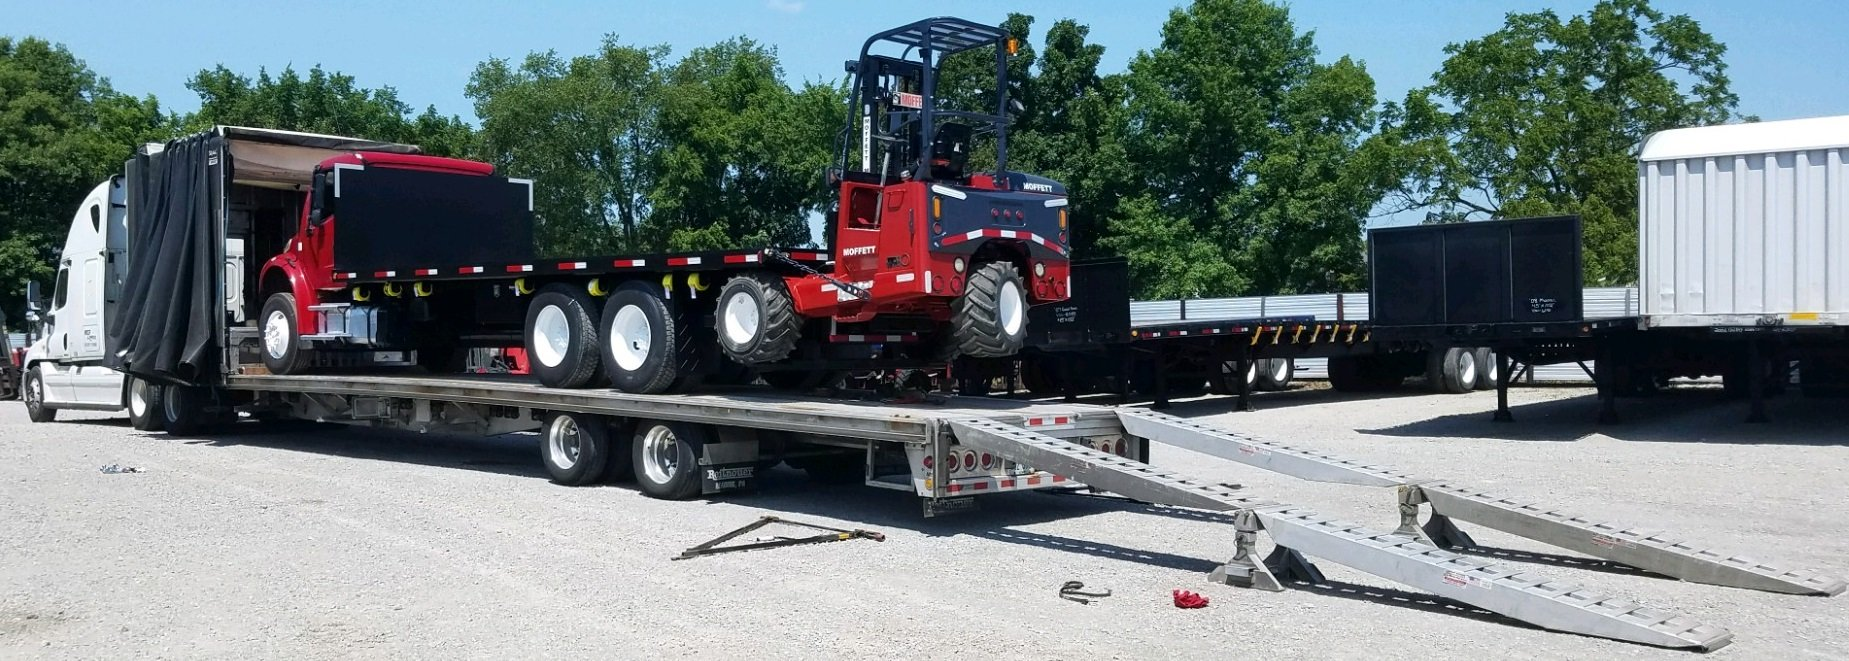 We sell trucks with a forklift on back. Moffett Truck and Princeton piggyback forklift truck